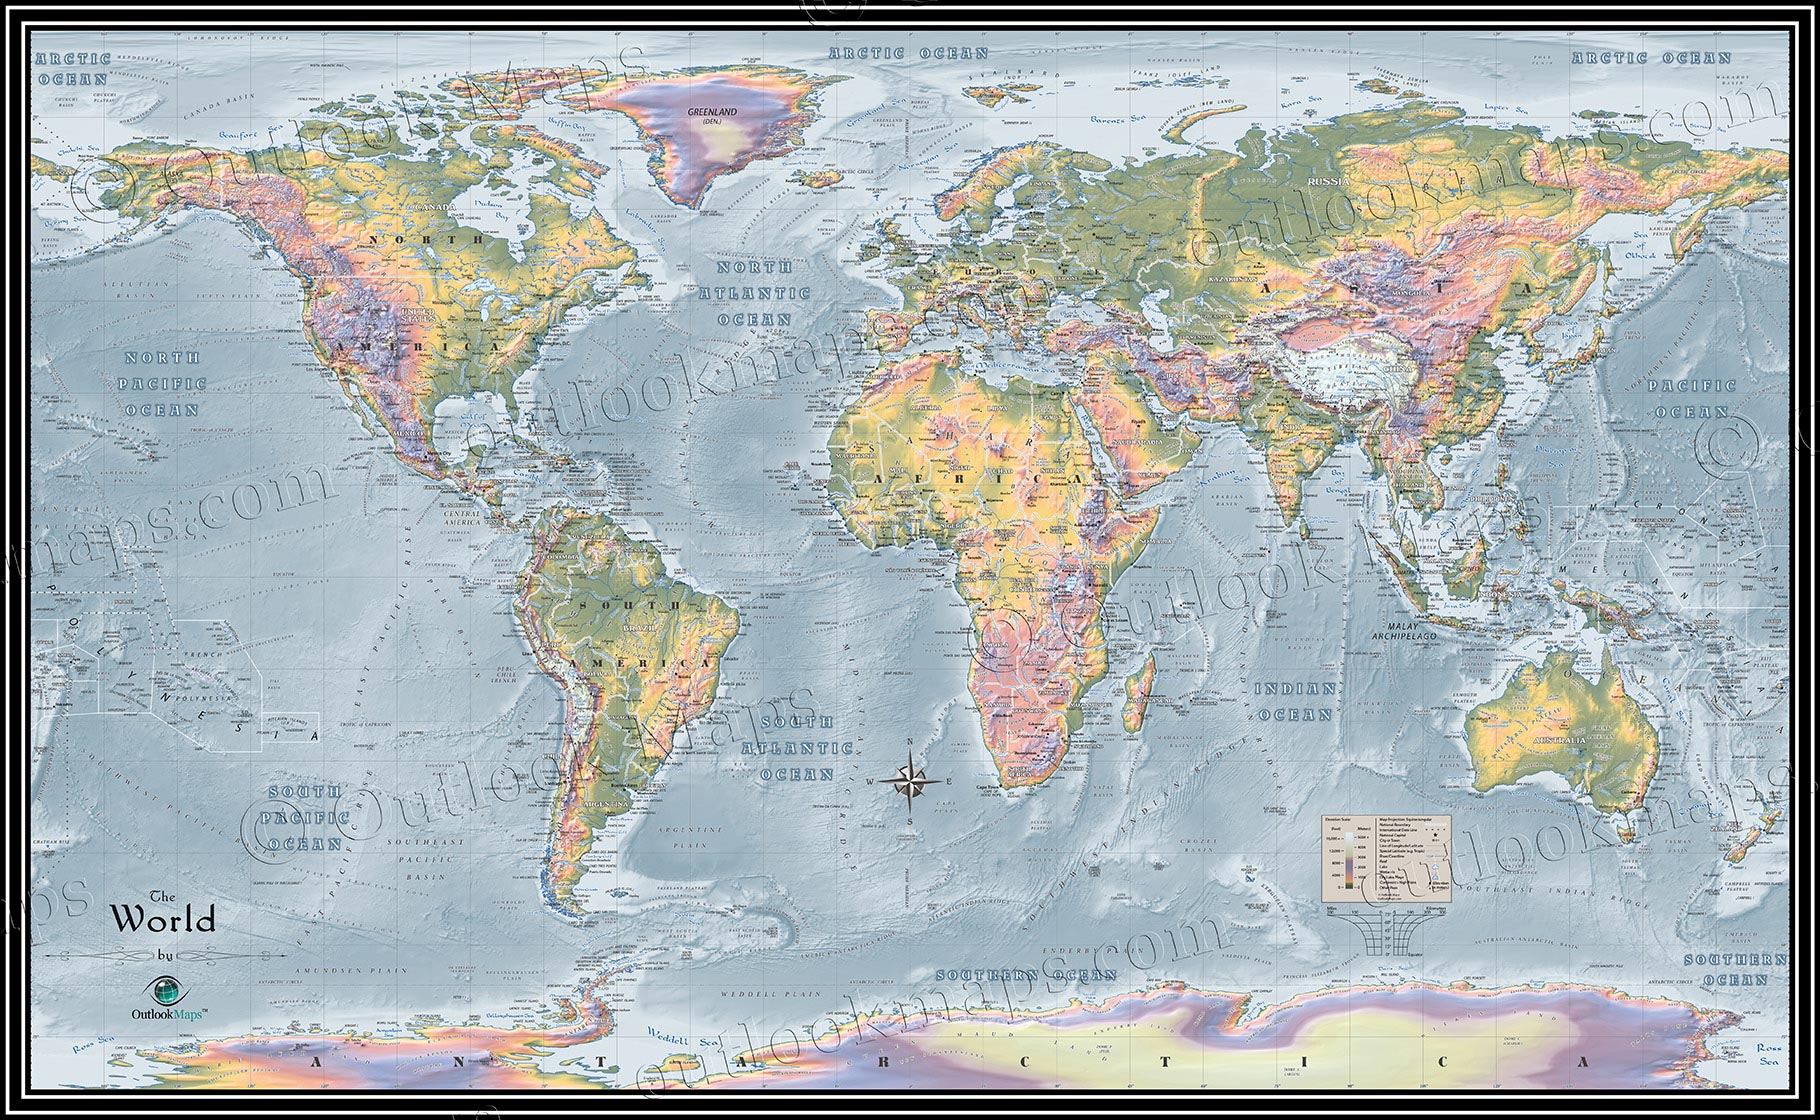 World Topographical Map Topographic Map Of World Elevation - Topographic map of the world